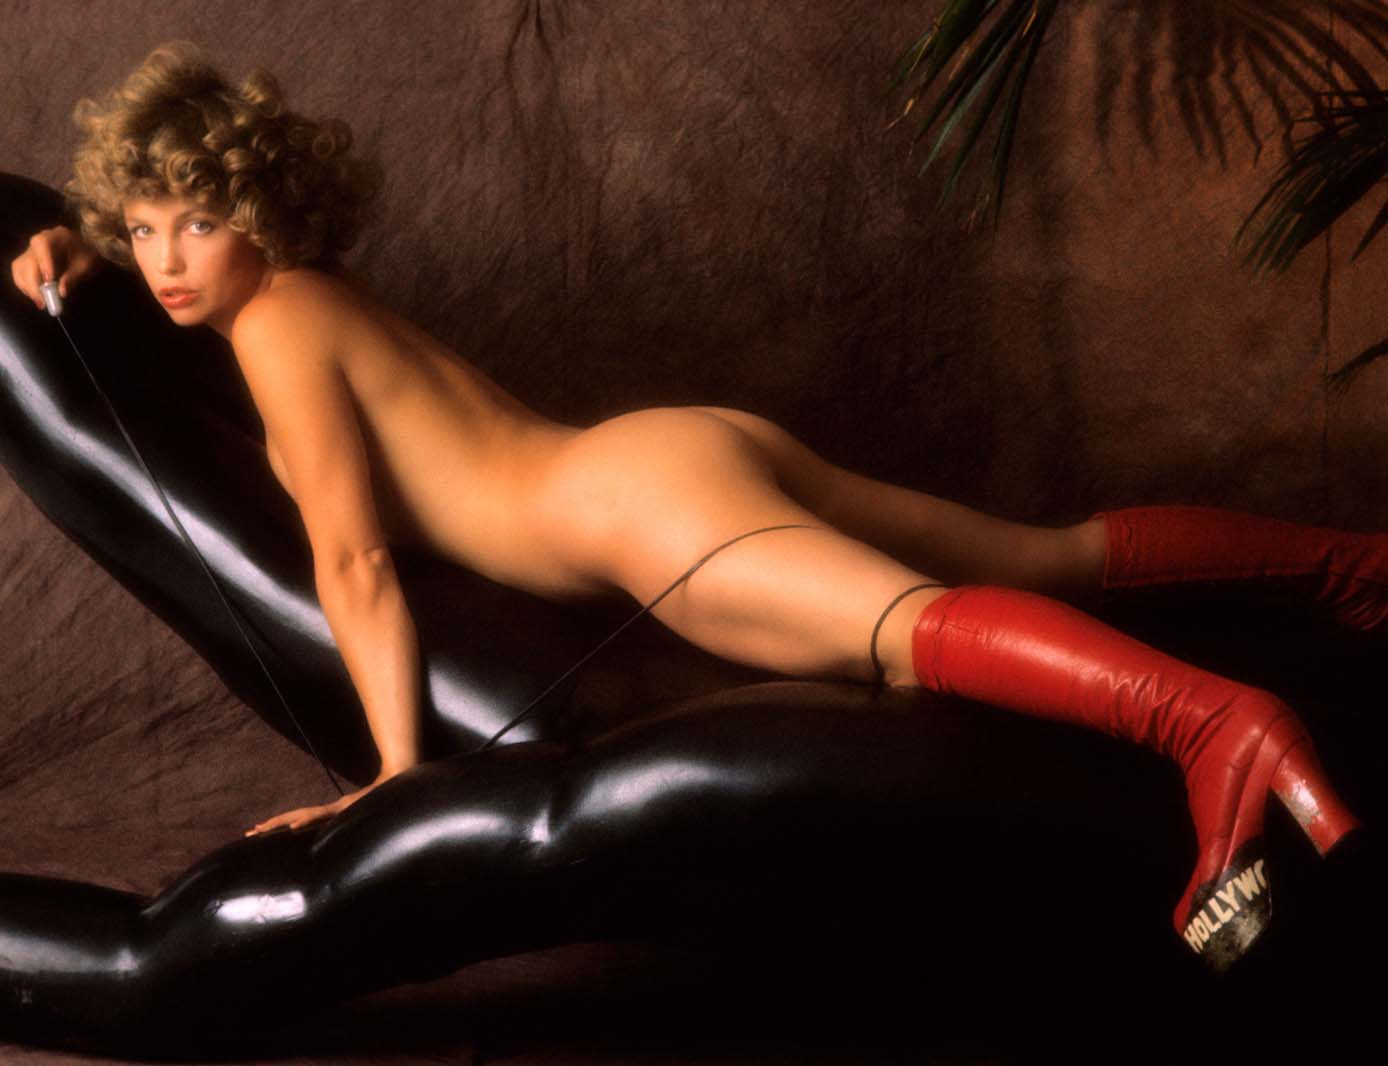 72791_cc_PicturingHerself_15xl_Suze_Randall_123_413lo.jpg